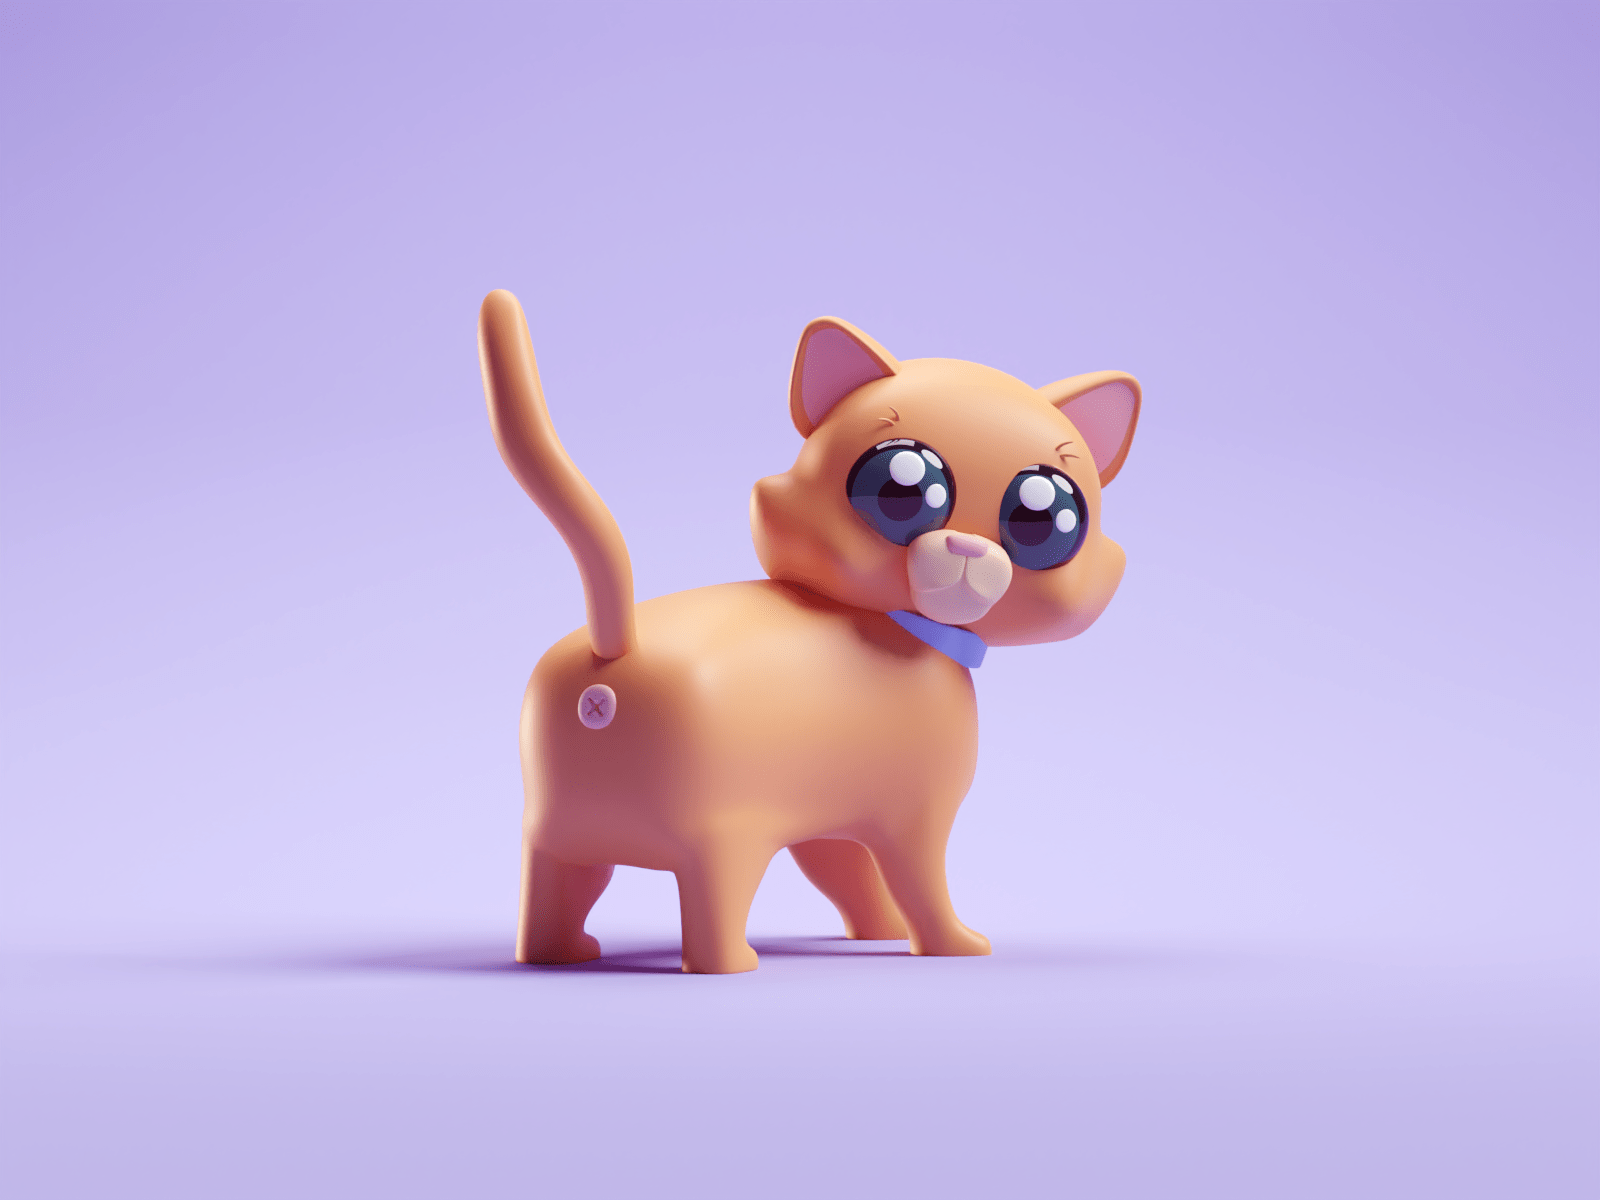 Cat Butt by Mohamed Chahin